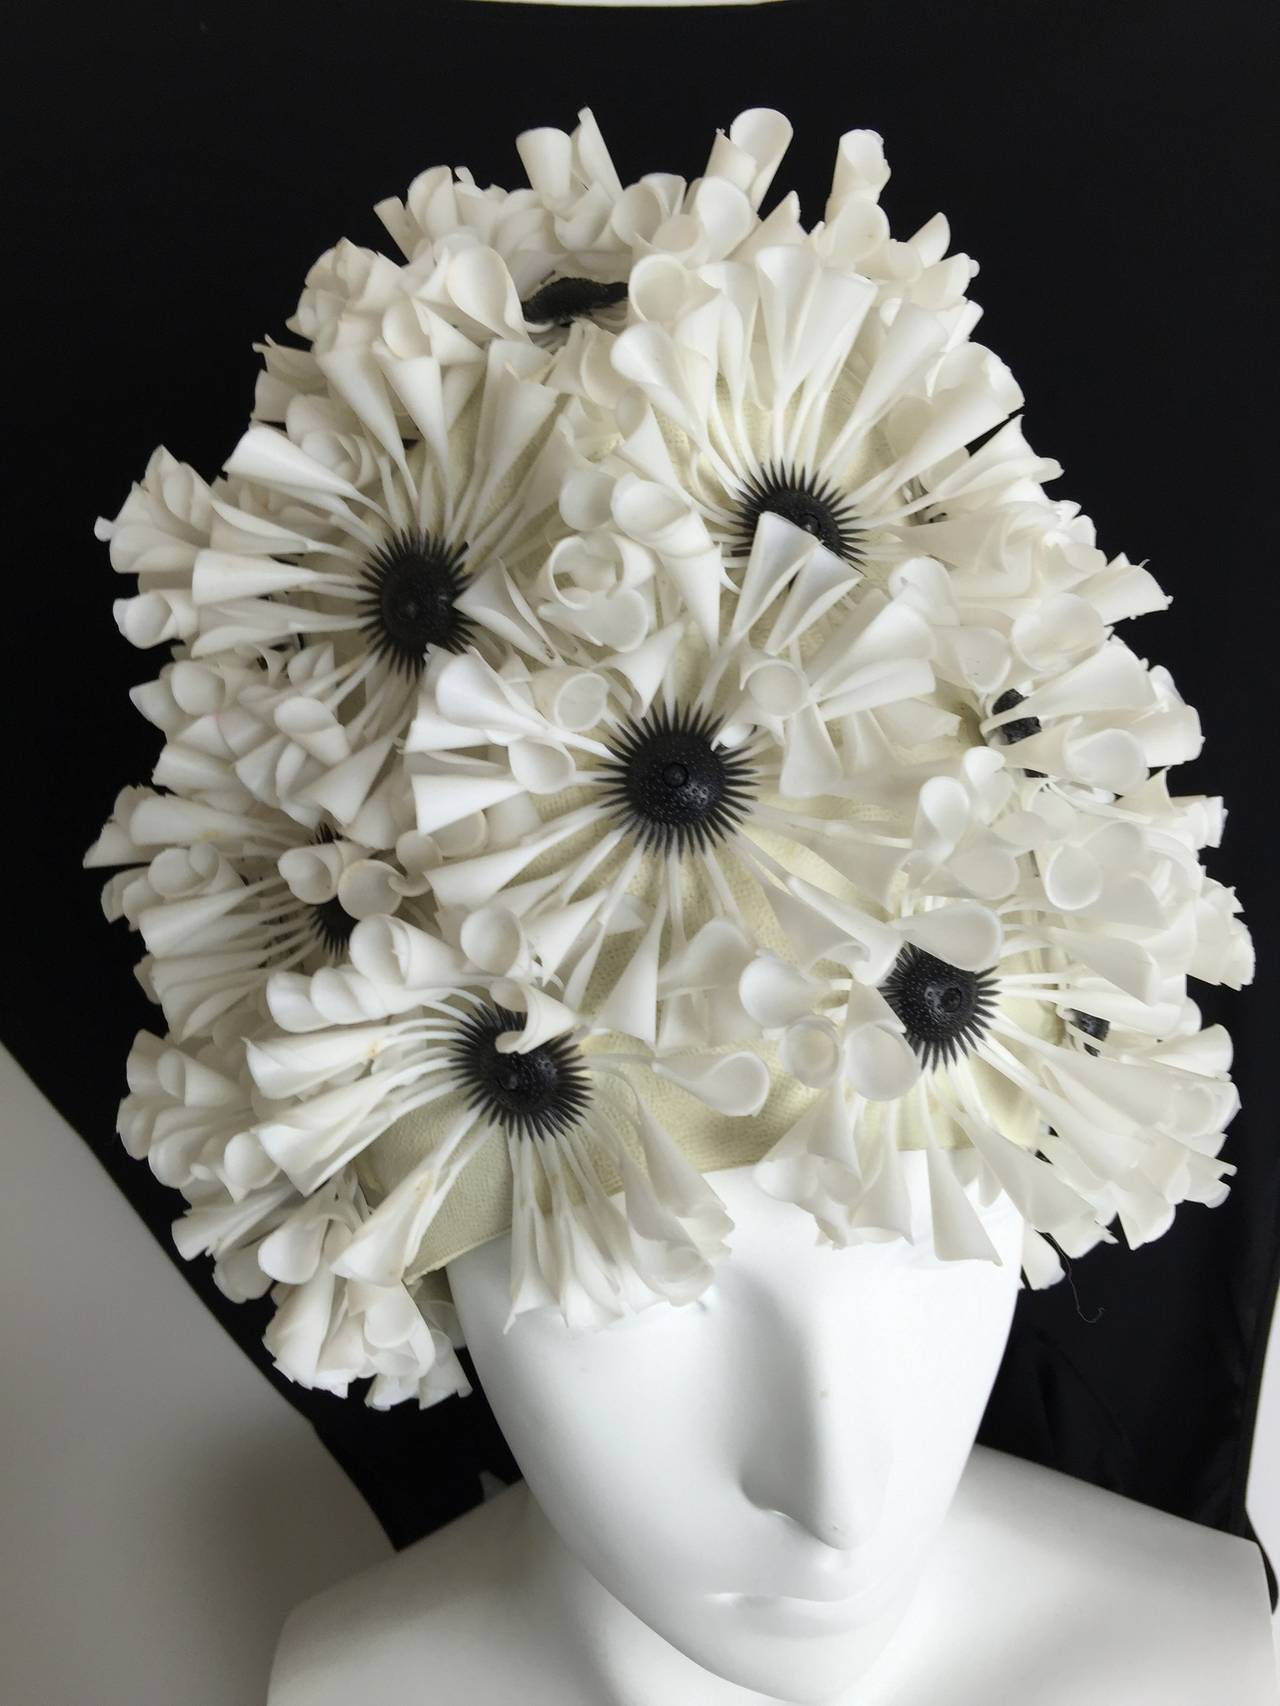 Original late 1950's swimming cap encrusted with white blossoms.  